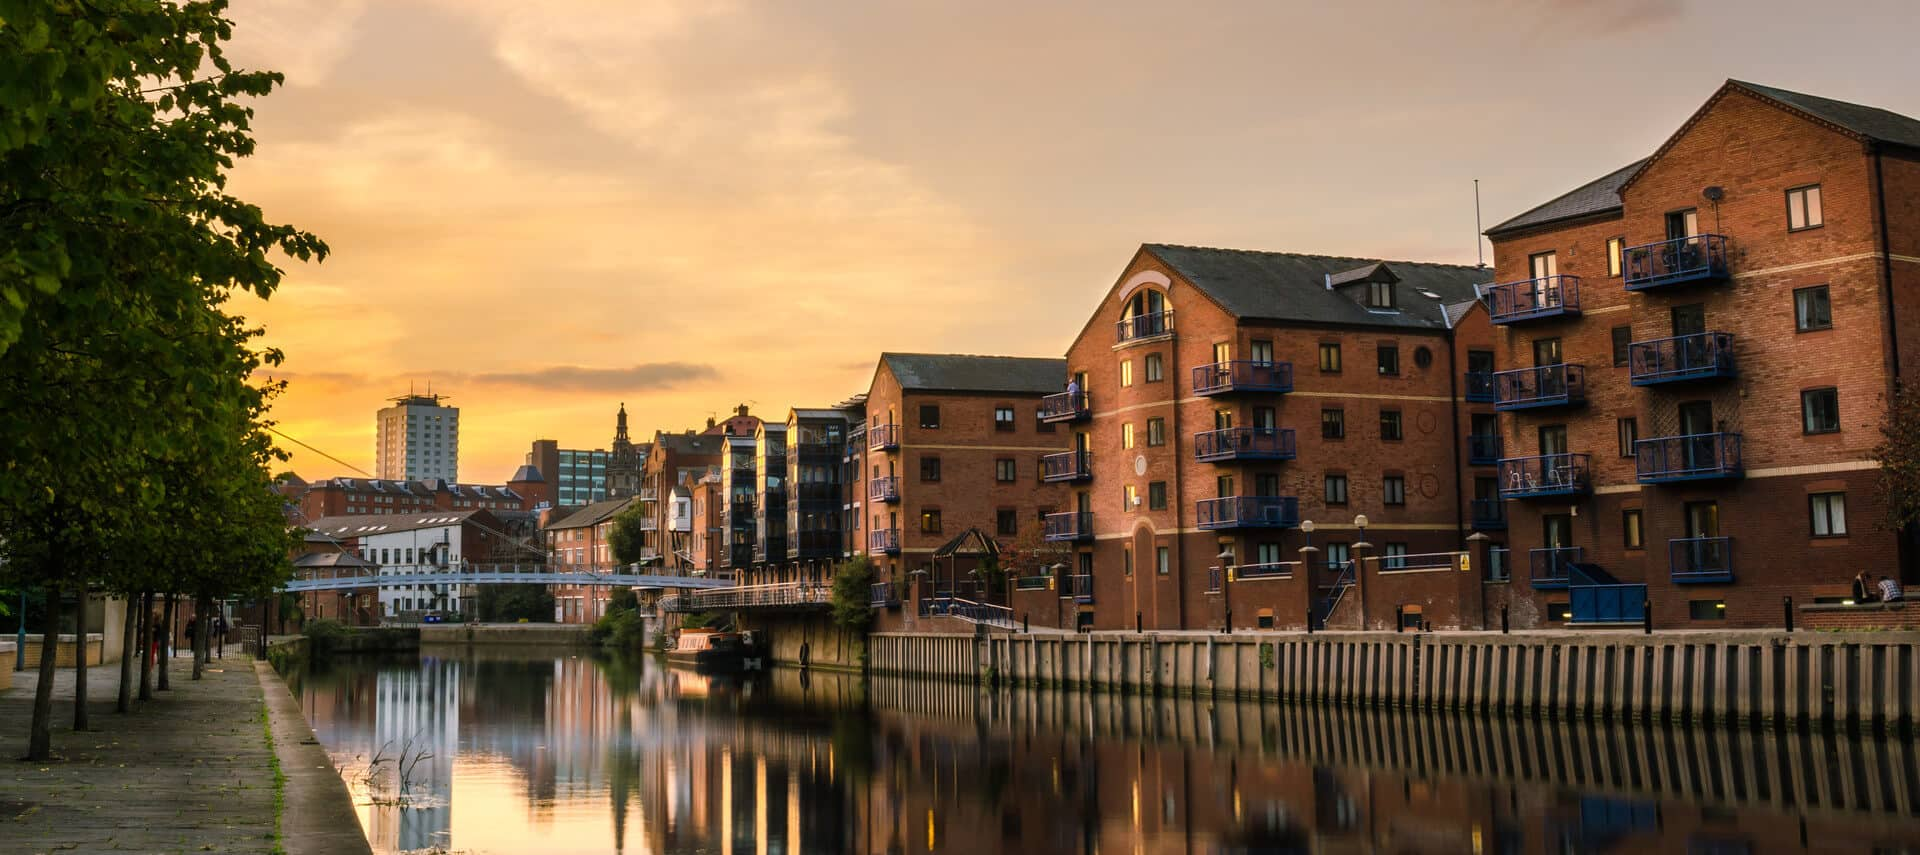 Line of brick buildings along the banks of a river at sunset.